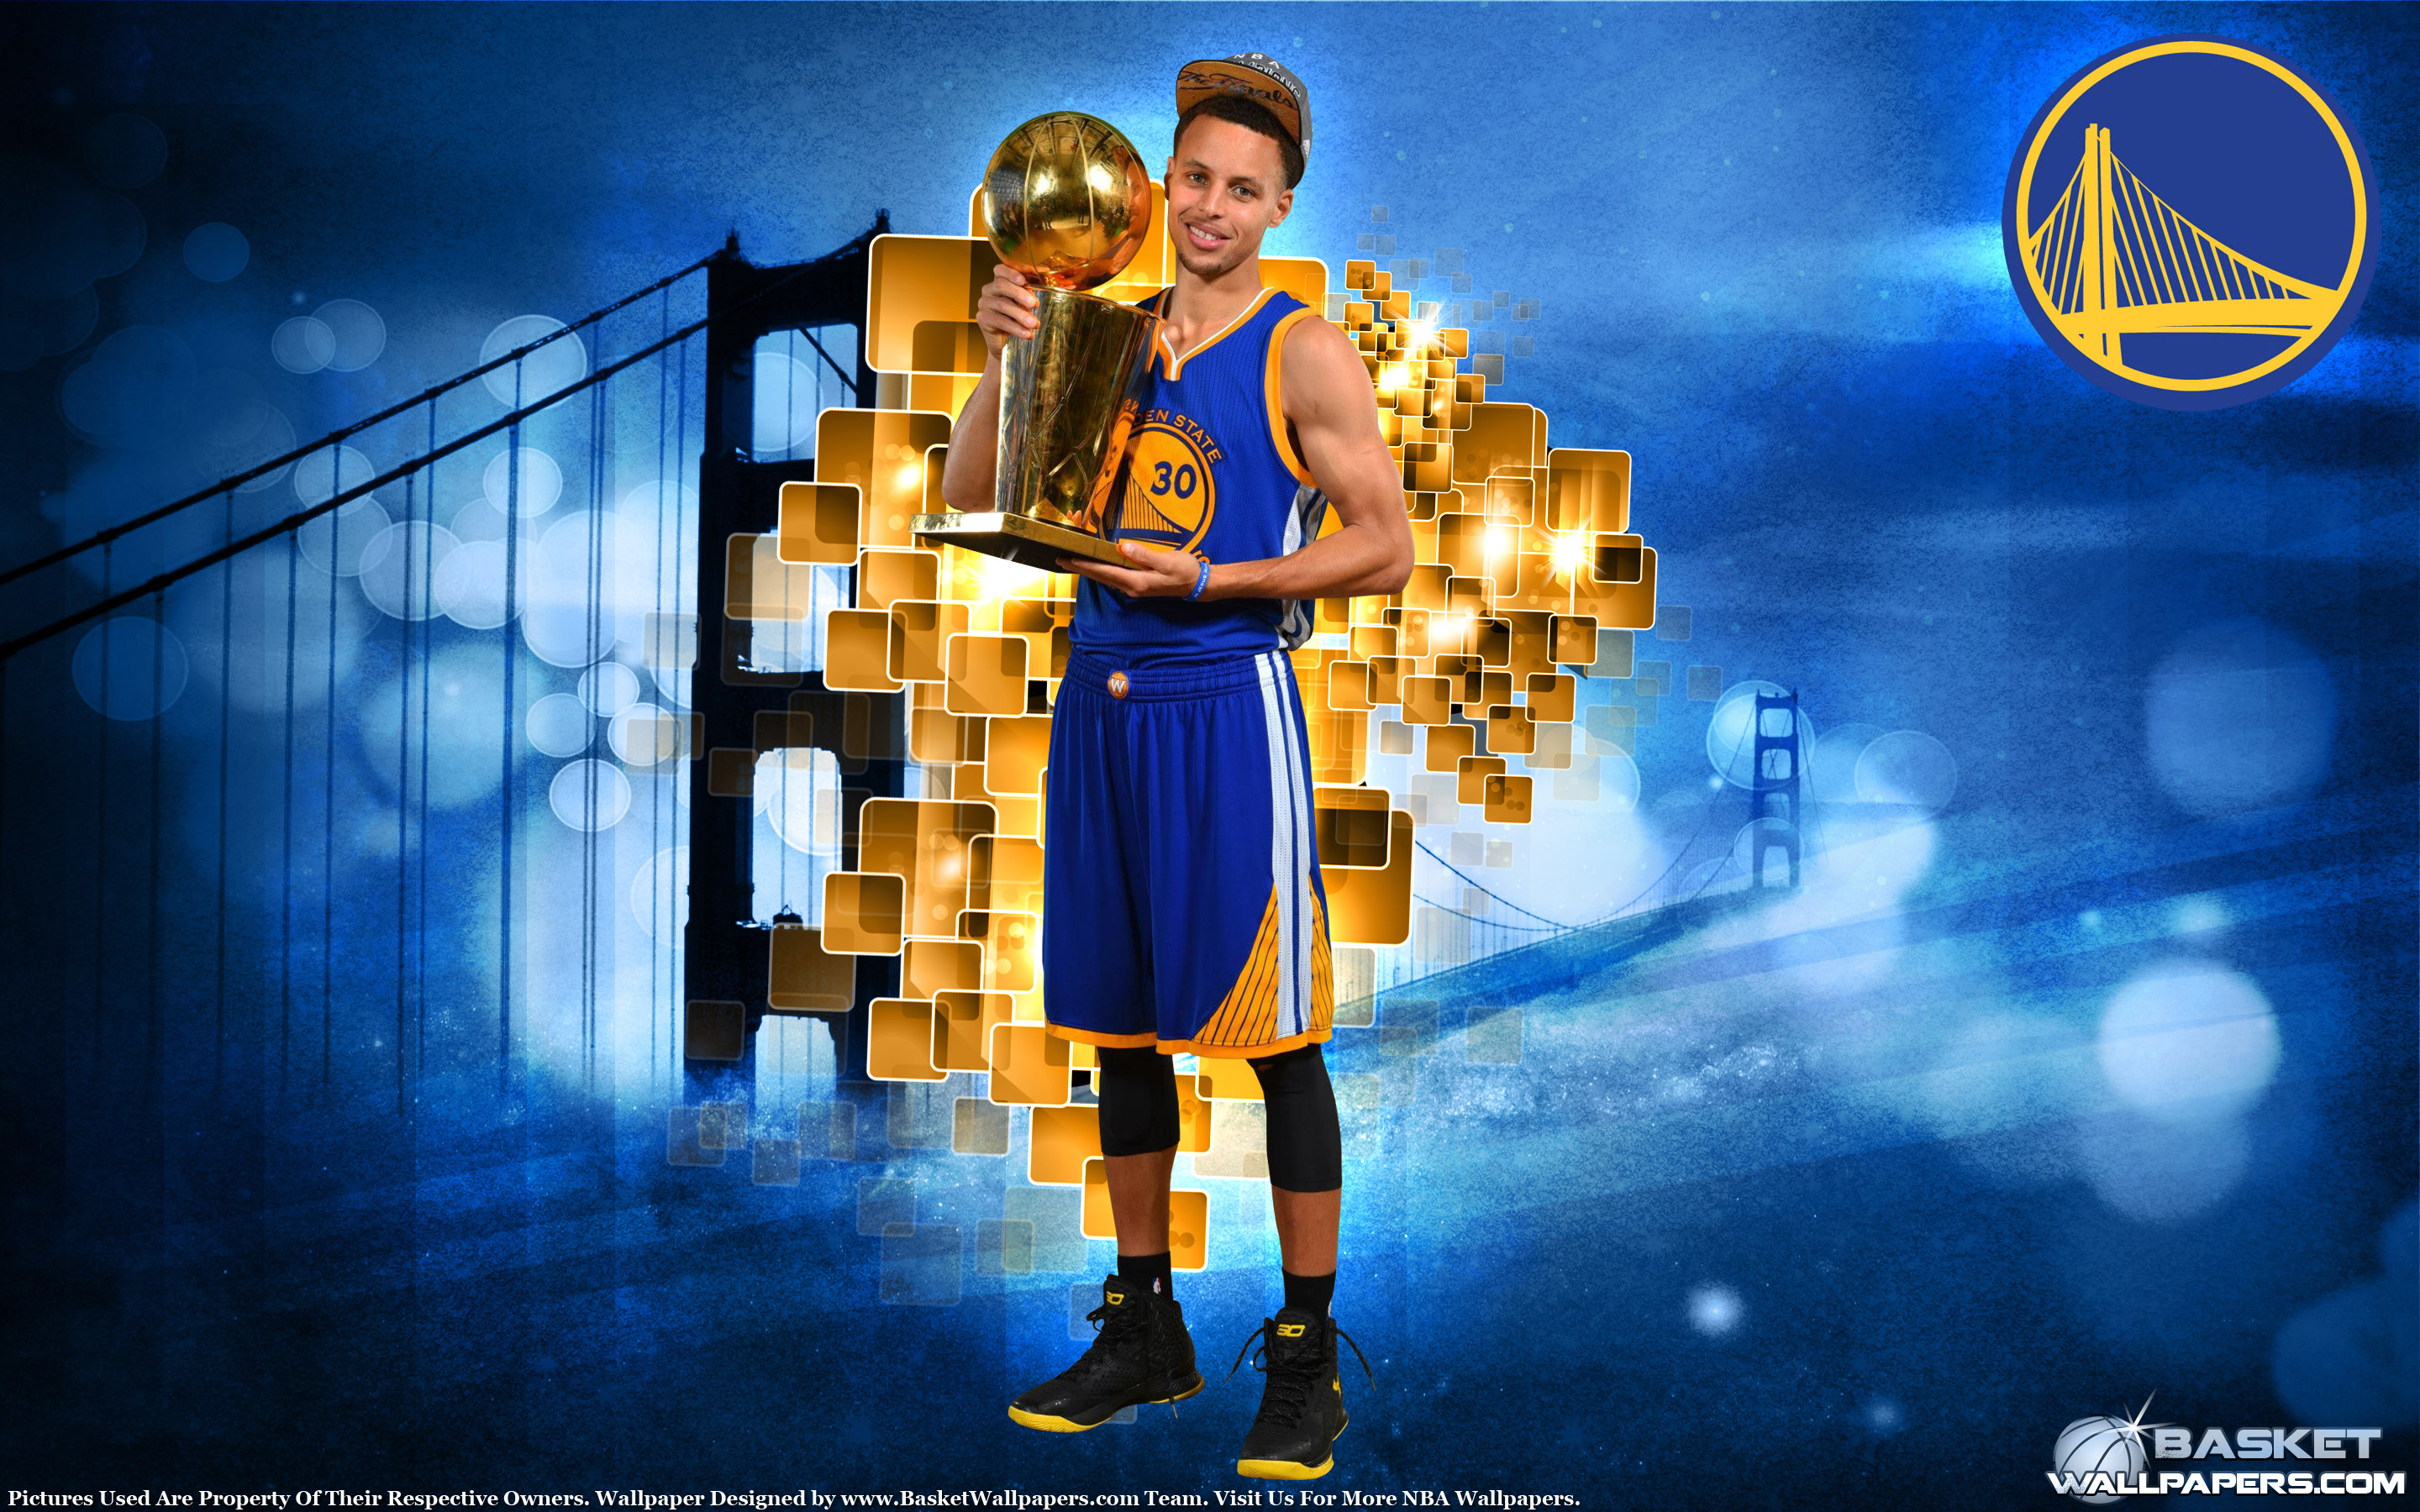 Stephen Curry 2015 NBA Champion 2880x1800 Wallpaper